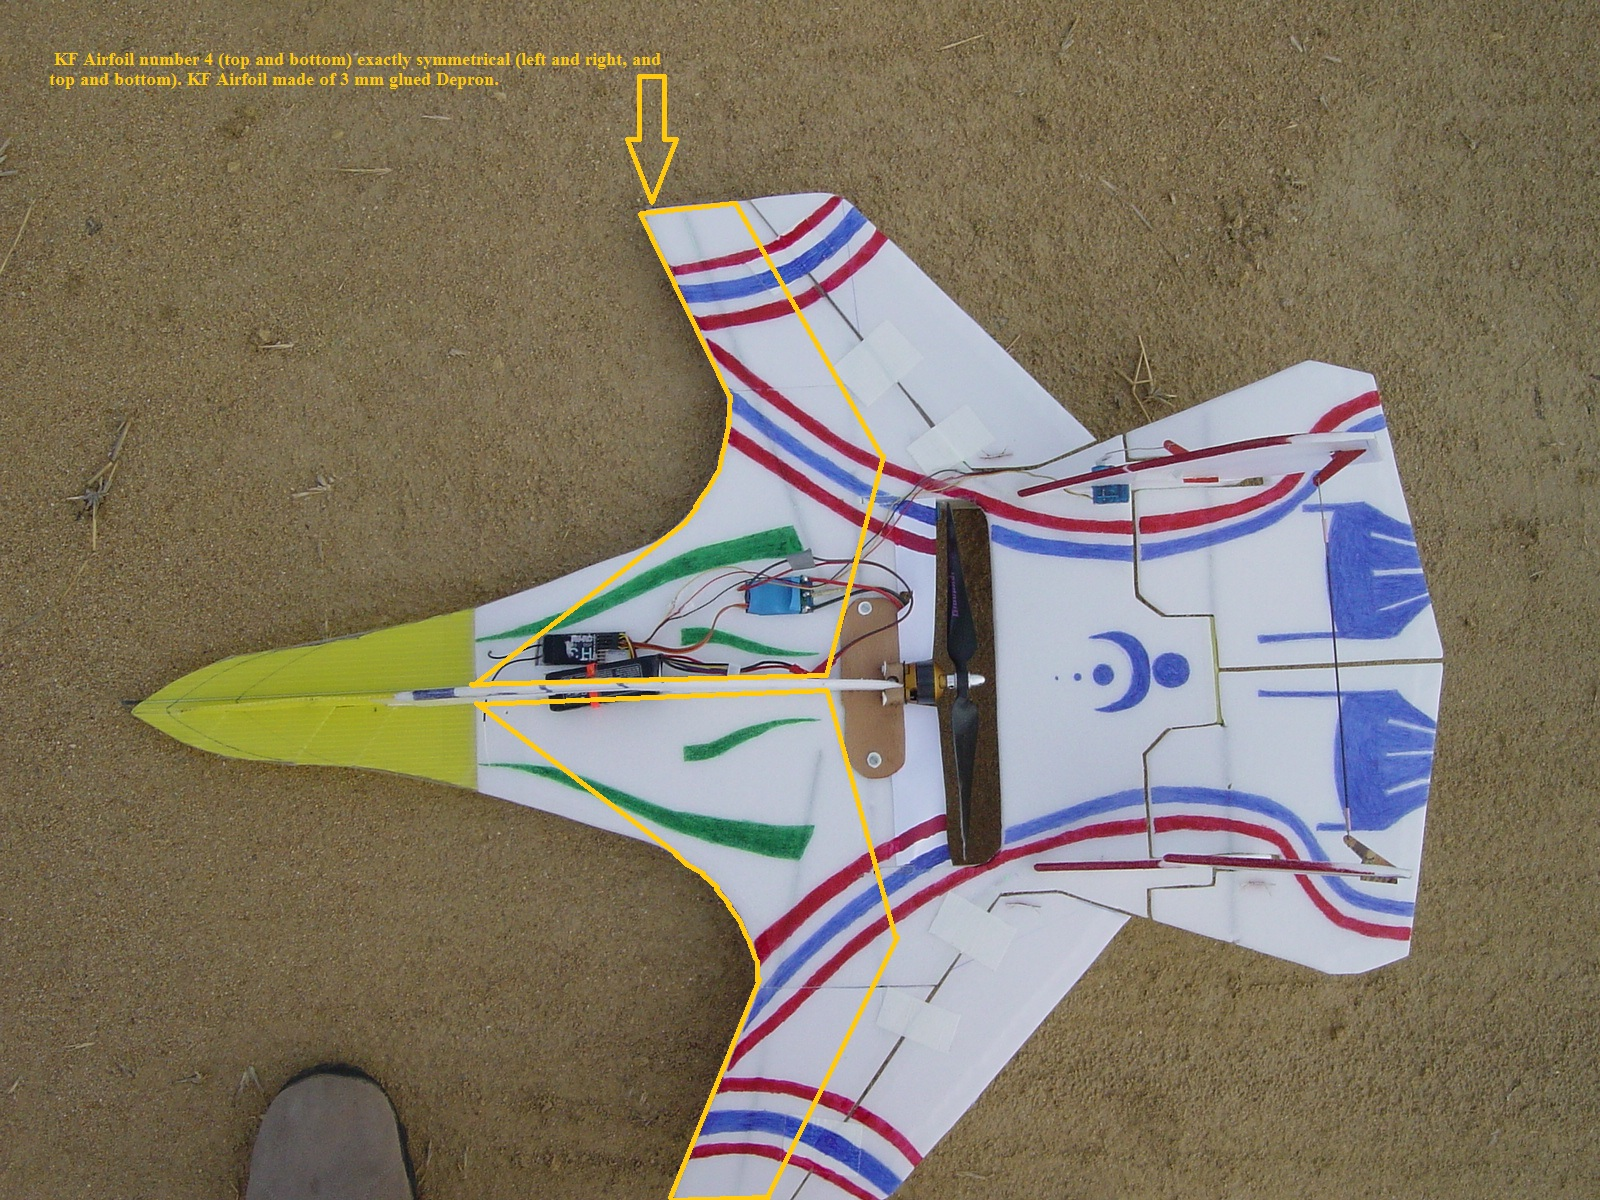 Click image for larger version  Name:SU 47 V2 JB KF airfoil.jpg Views:52 Size:801.3 KB ID:1959027